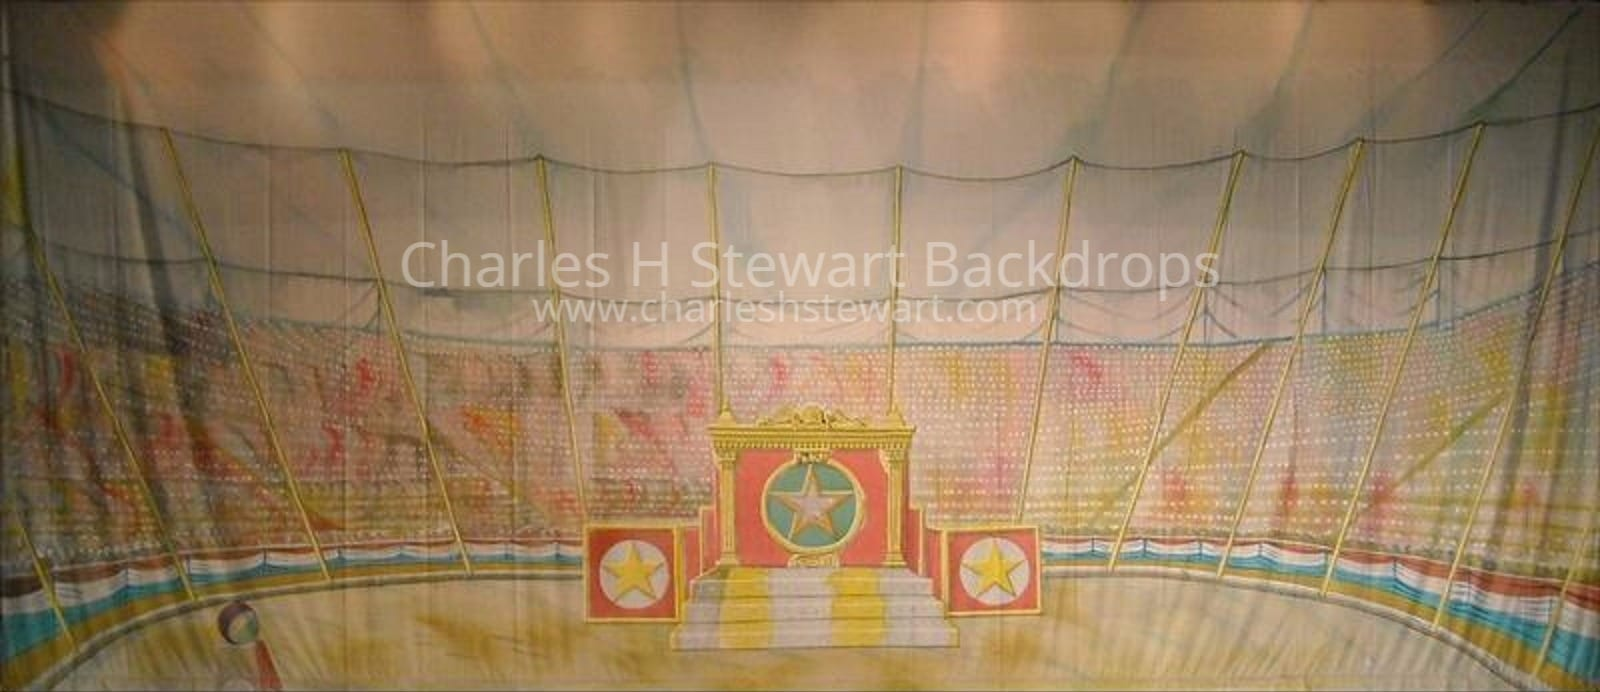 Circus Tent Interior Backdrop & Circus Tent Interior Backdrop - Backdrops by Charles H. Stewart